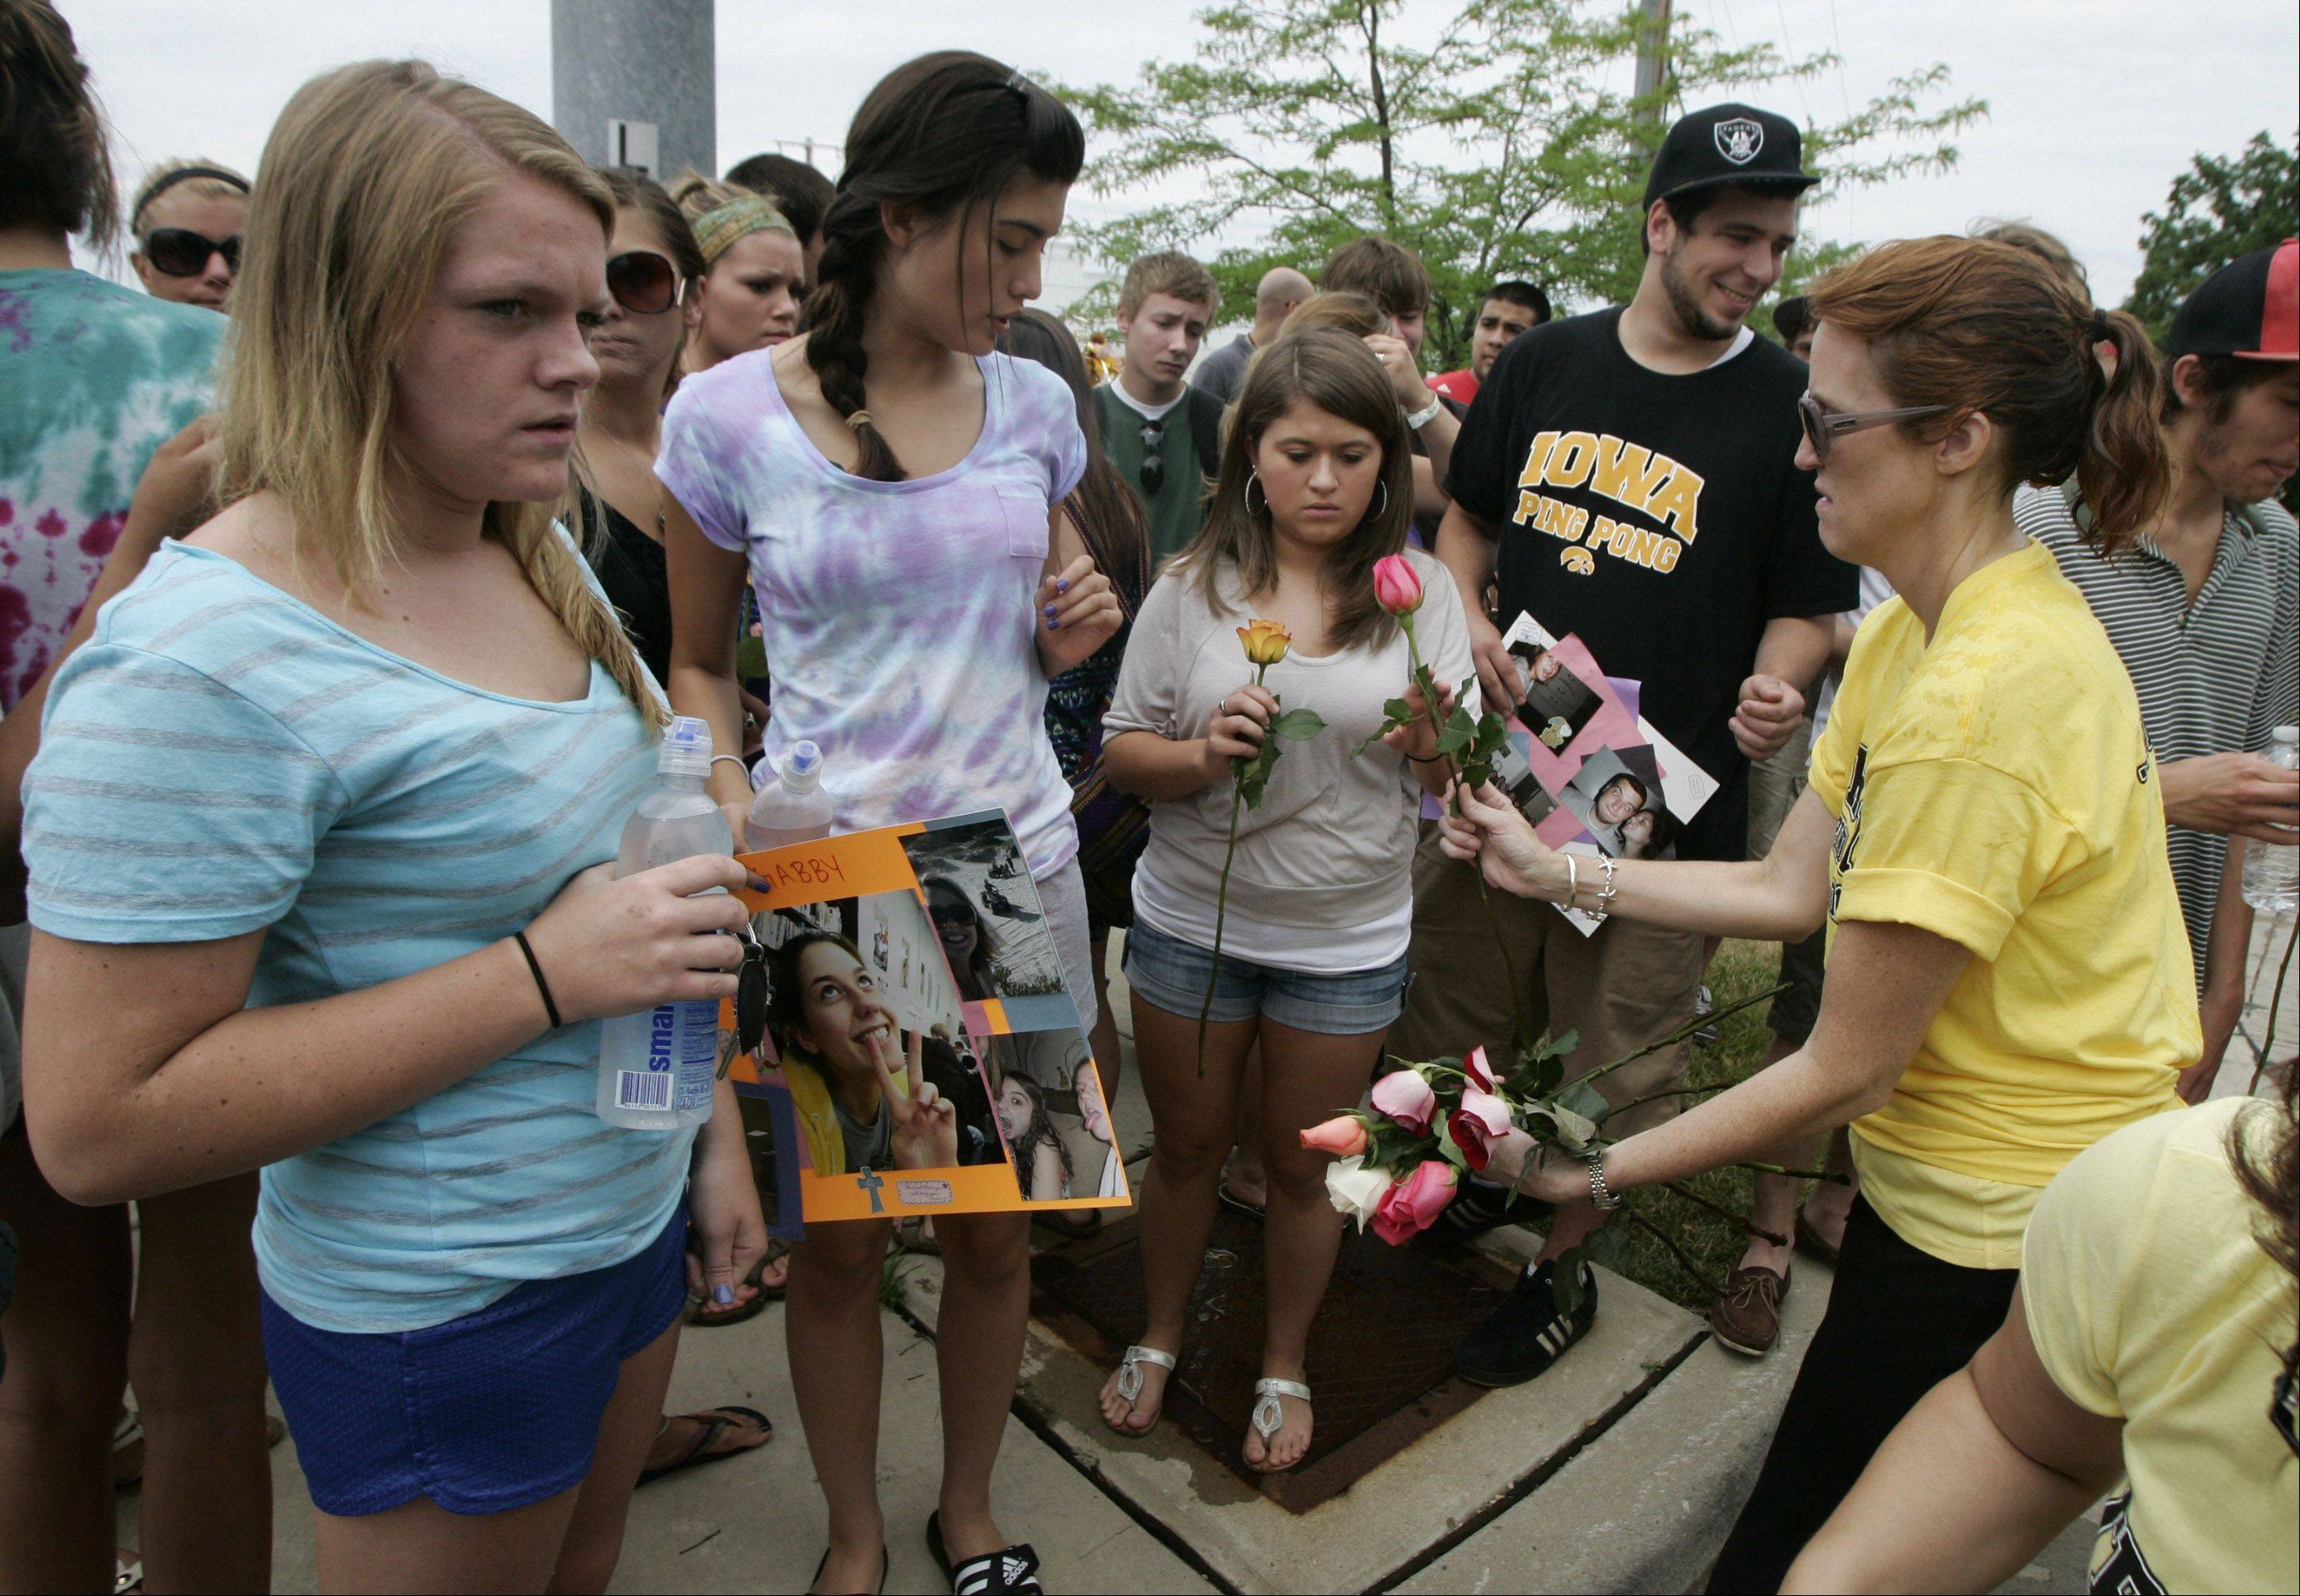 Annie Sadowski, right, of Trilogy Dance in Lake Zurich, hands out flowers to friends and family of hit-and-run victim Gabriella Drozdz during the Lake Zurich Alpine Festival parade Sunday. Drozdz, of Lake Zurich, was killed by someone driving an SUV Friday night as she and two other friends were walking along Church Street on their way to Alpine Fest.